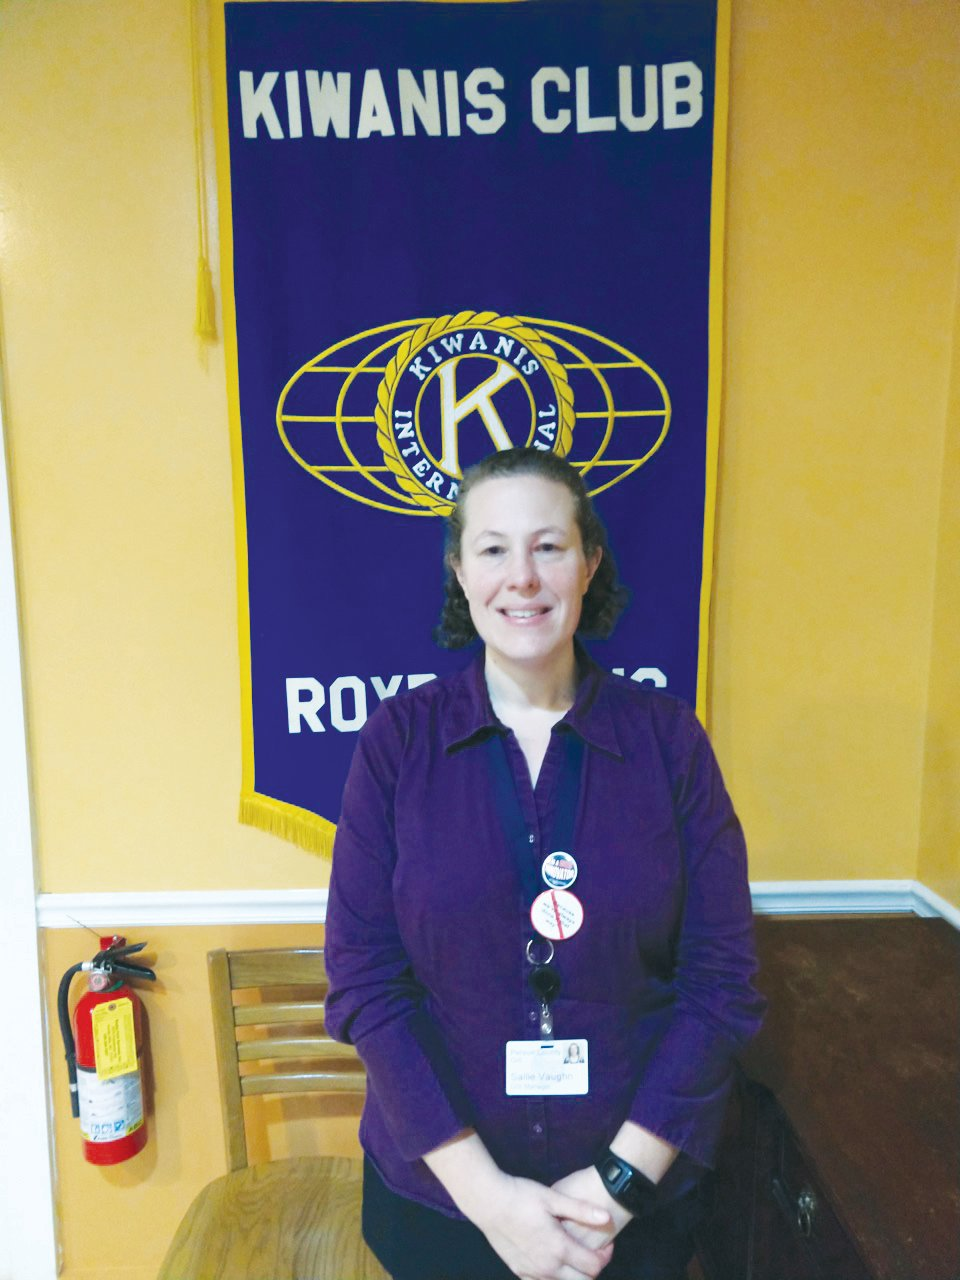 Person County GIS manager and 2020 county census coordinator Sallie Vaughn spoke to those in attendance at the February meeting of the Roxboro Kiwanis Club.